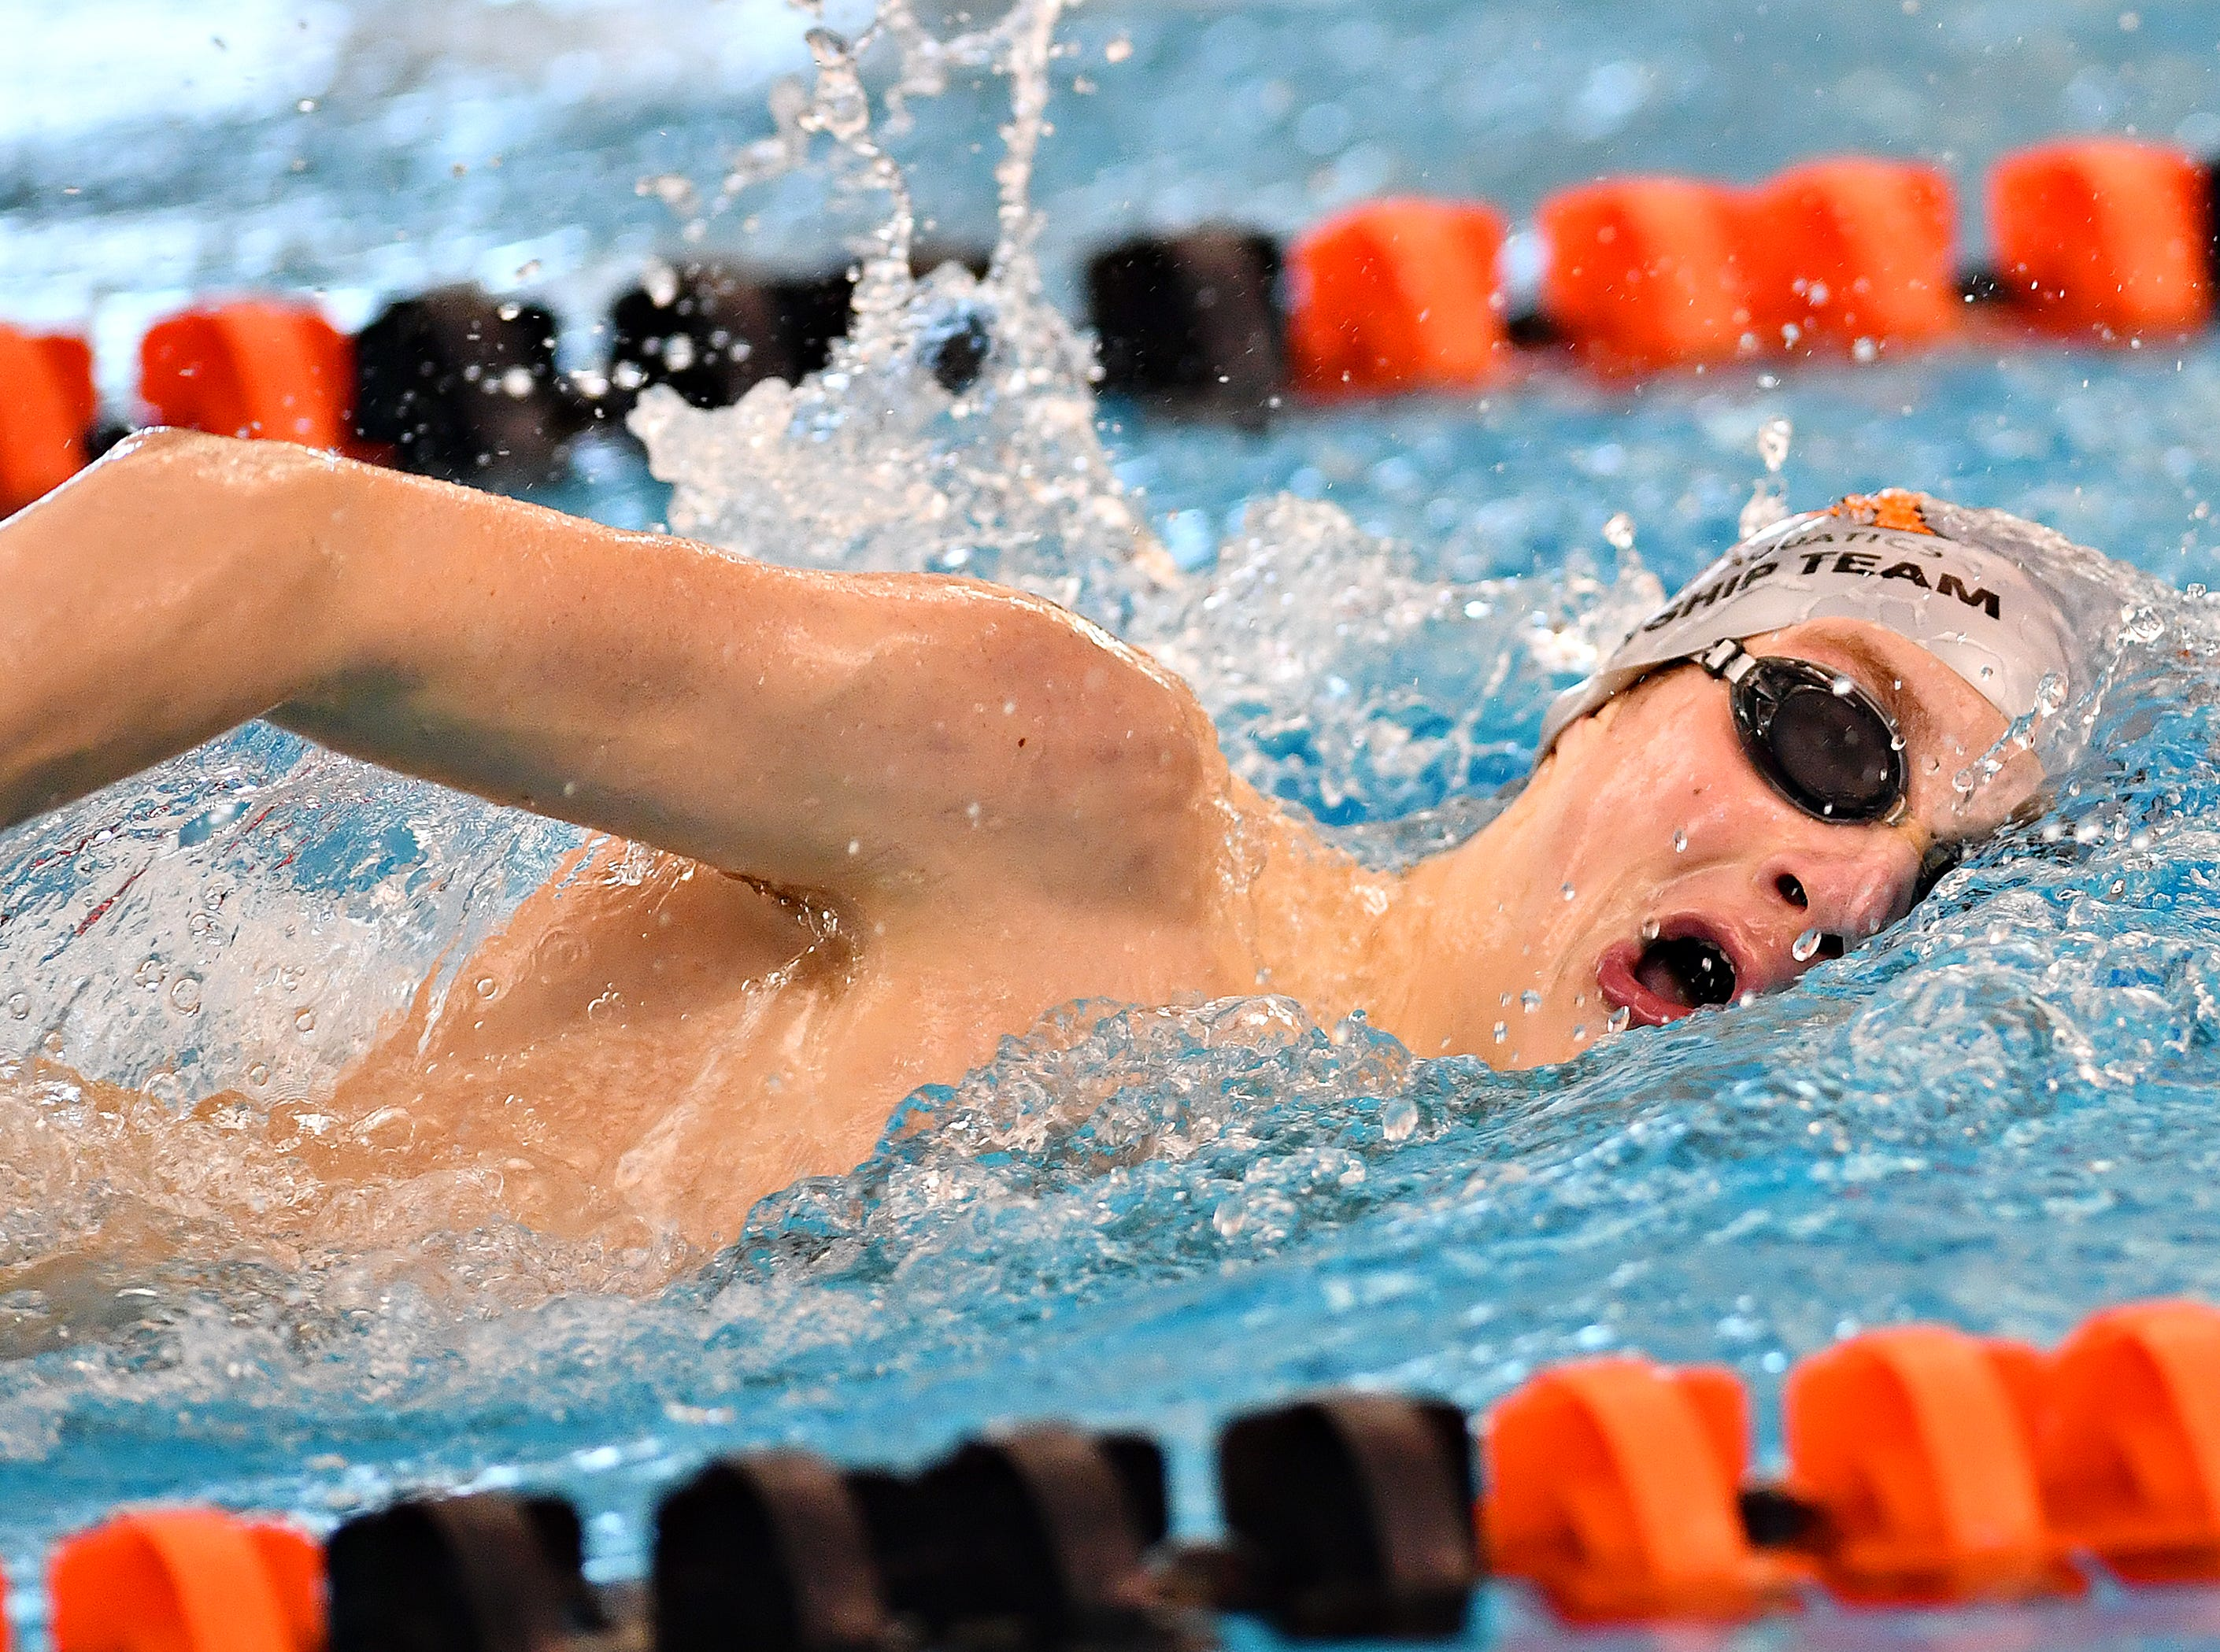 Central York's Ben Hagan competes in the 400 Yard Freestyle Relay event during the York-Adams League Swimming Championship at Central York High School in Springettsbury Township, Saturday, Feb. 9, 2019. Dawn J. Sagert photo